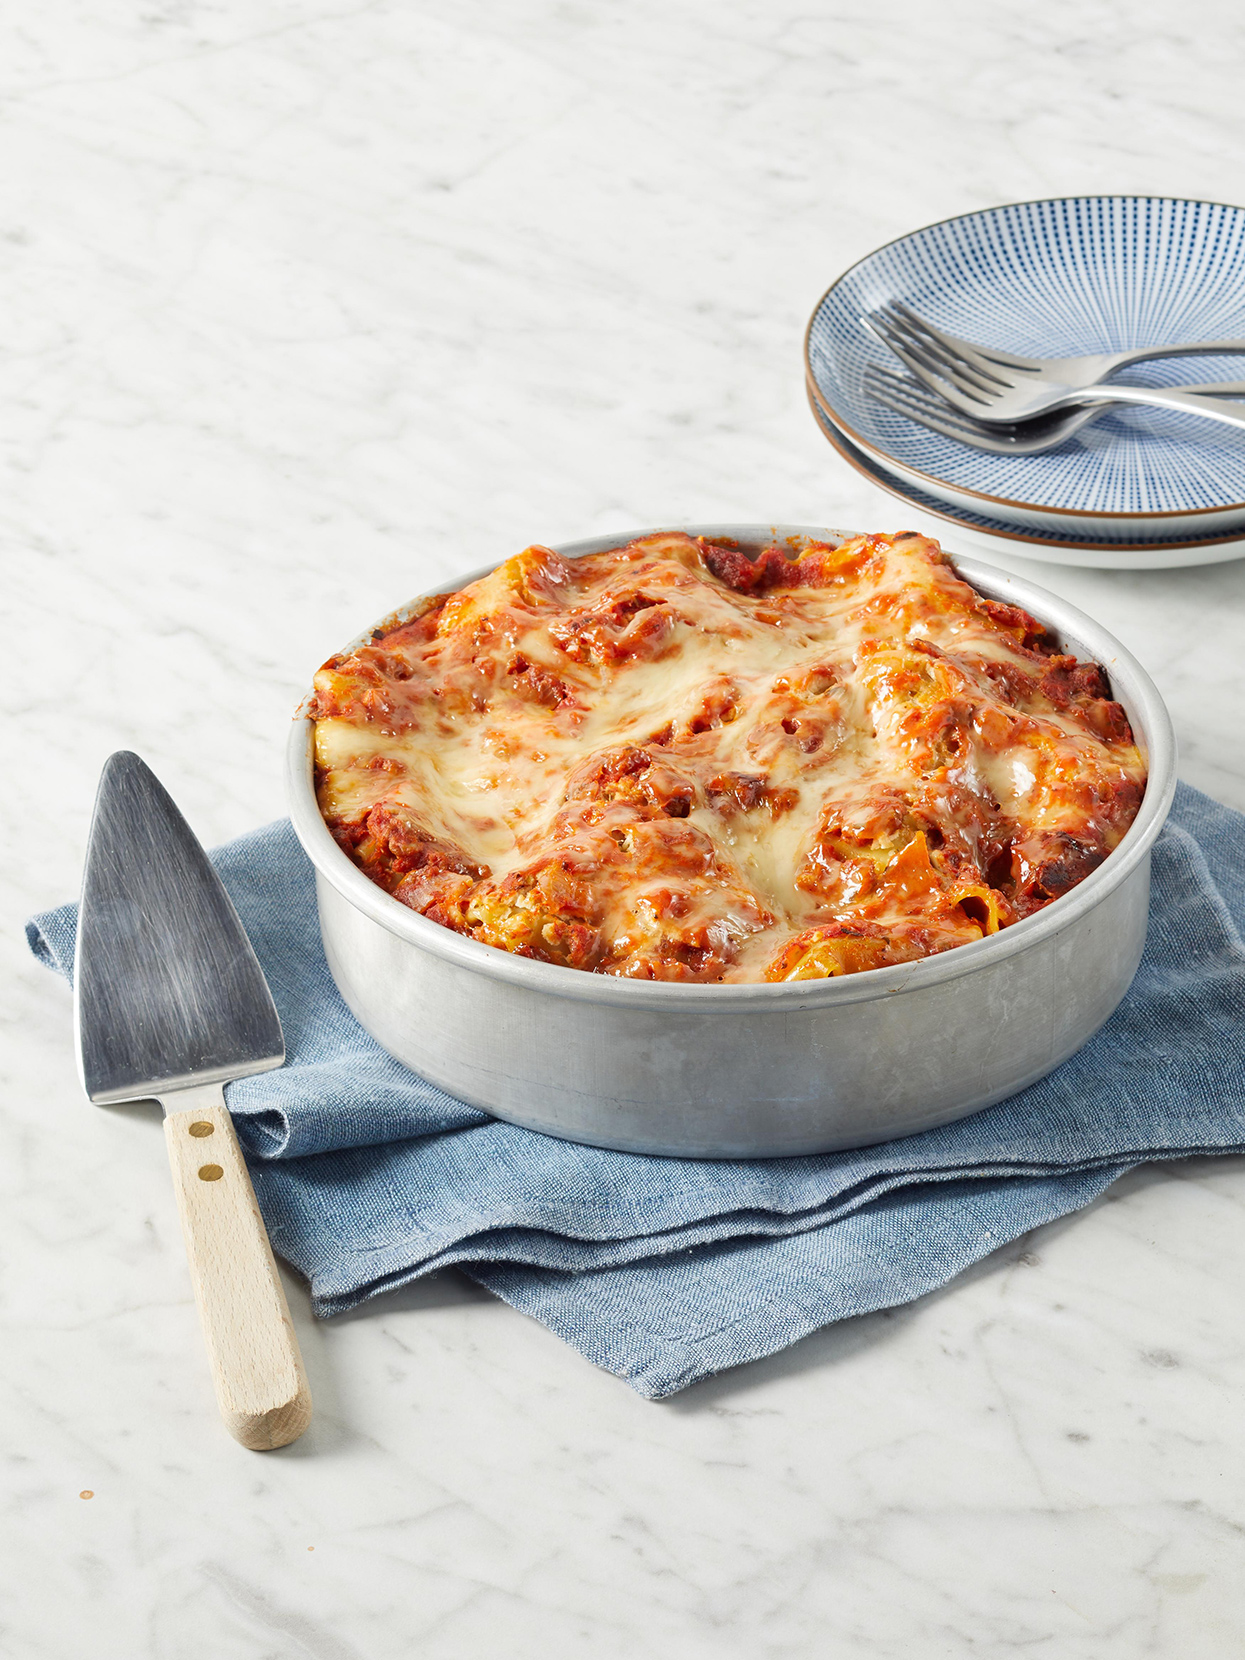 Instant-Pot Lasagna in an 8-inch cake pan on blue fabric with metal serving spatula